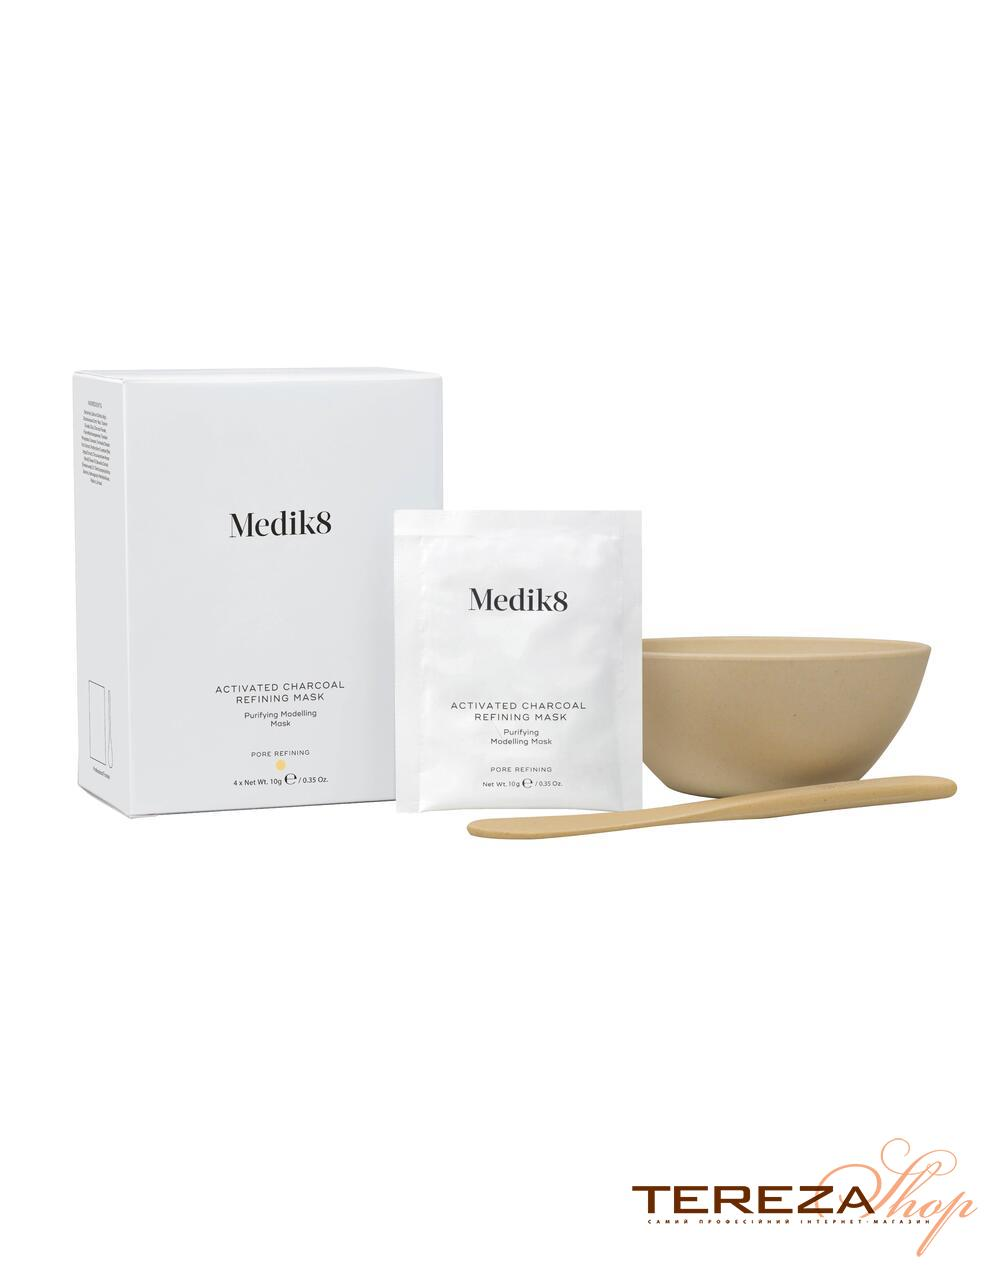 ACTIVATED CHARCOAL REFINING MASK MEDIK8 | Tereza Shop